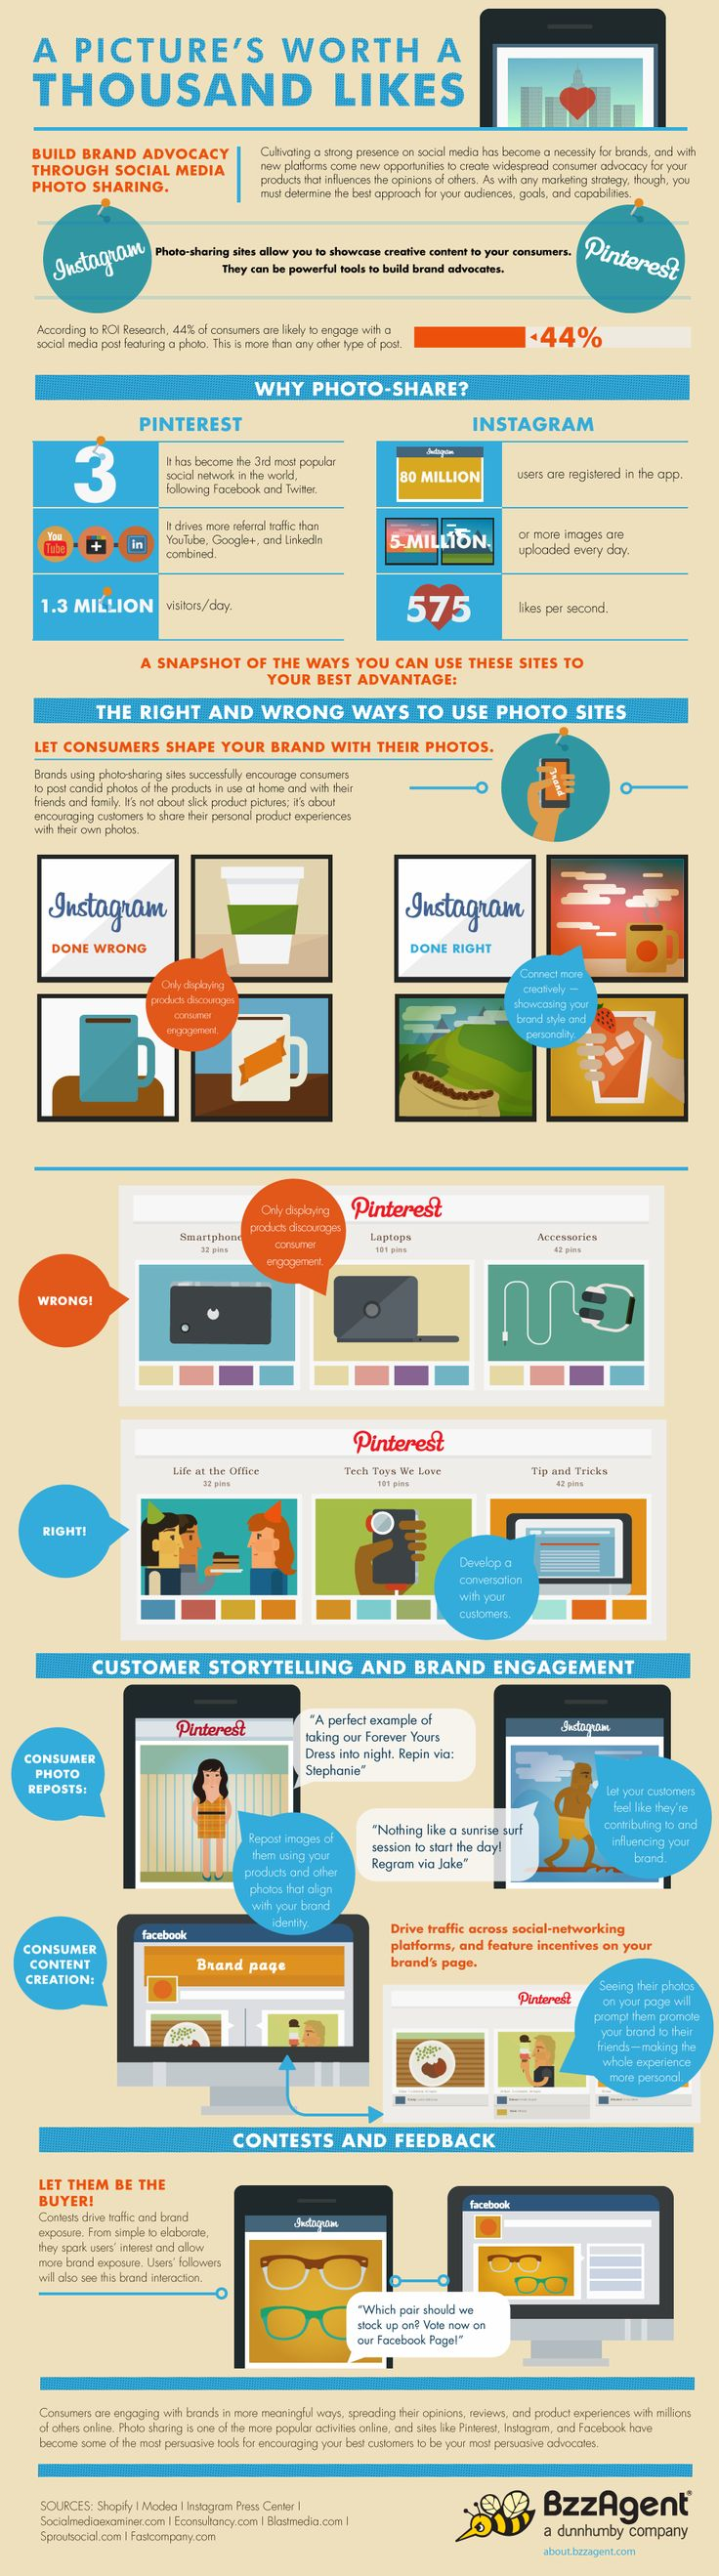 Building Brand Engagement With Photo Sharing on Instagram, Pinterest #Branding #Marketing #Infographic